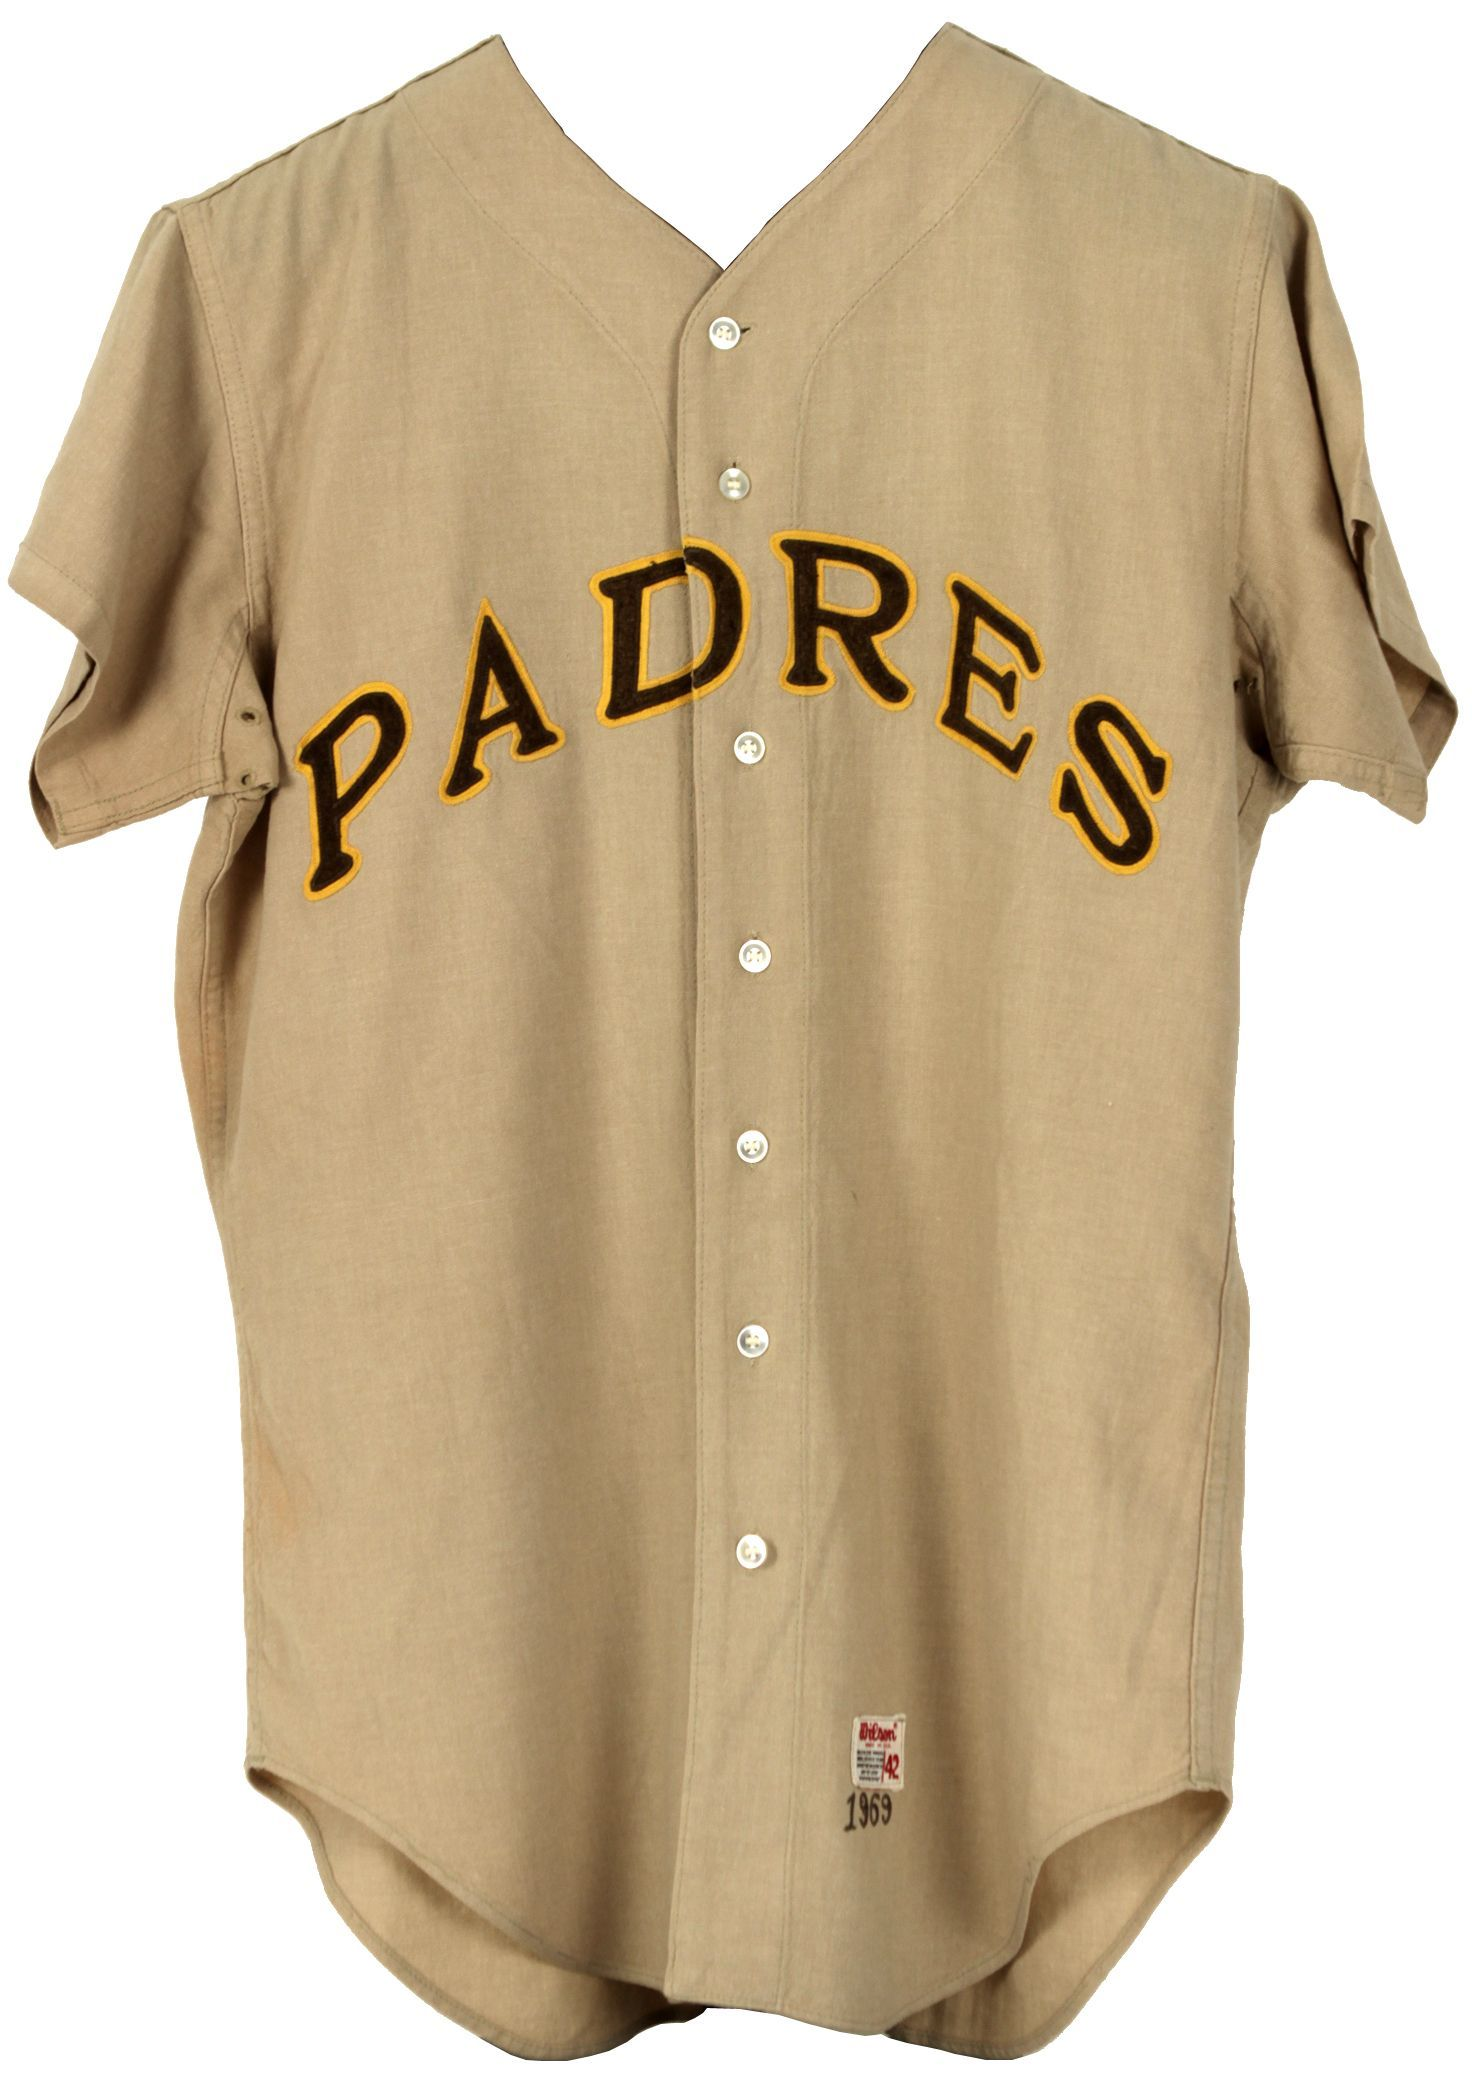 timeless design aac7a 3b696 San diego padres 1969 uniforms - Google Search | Padres ...